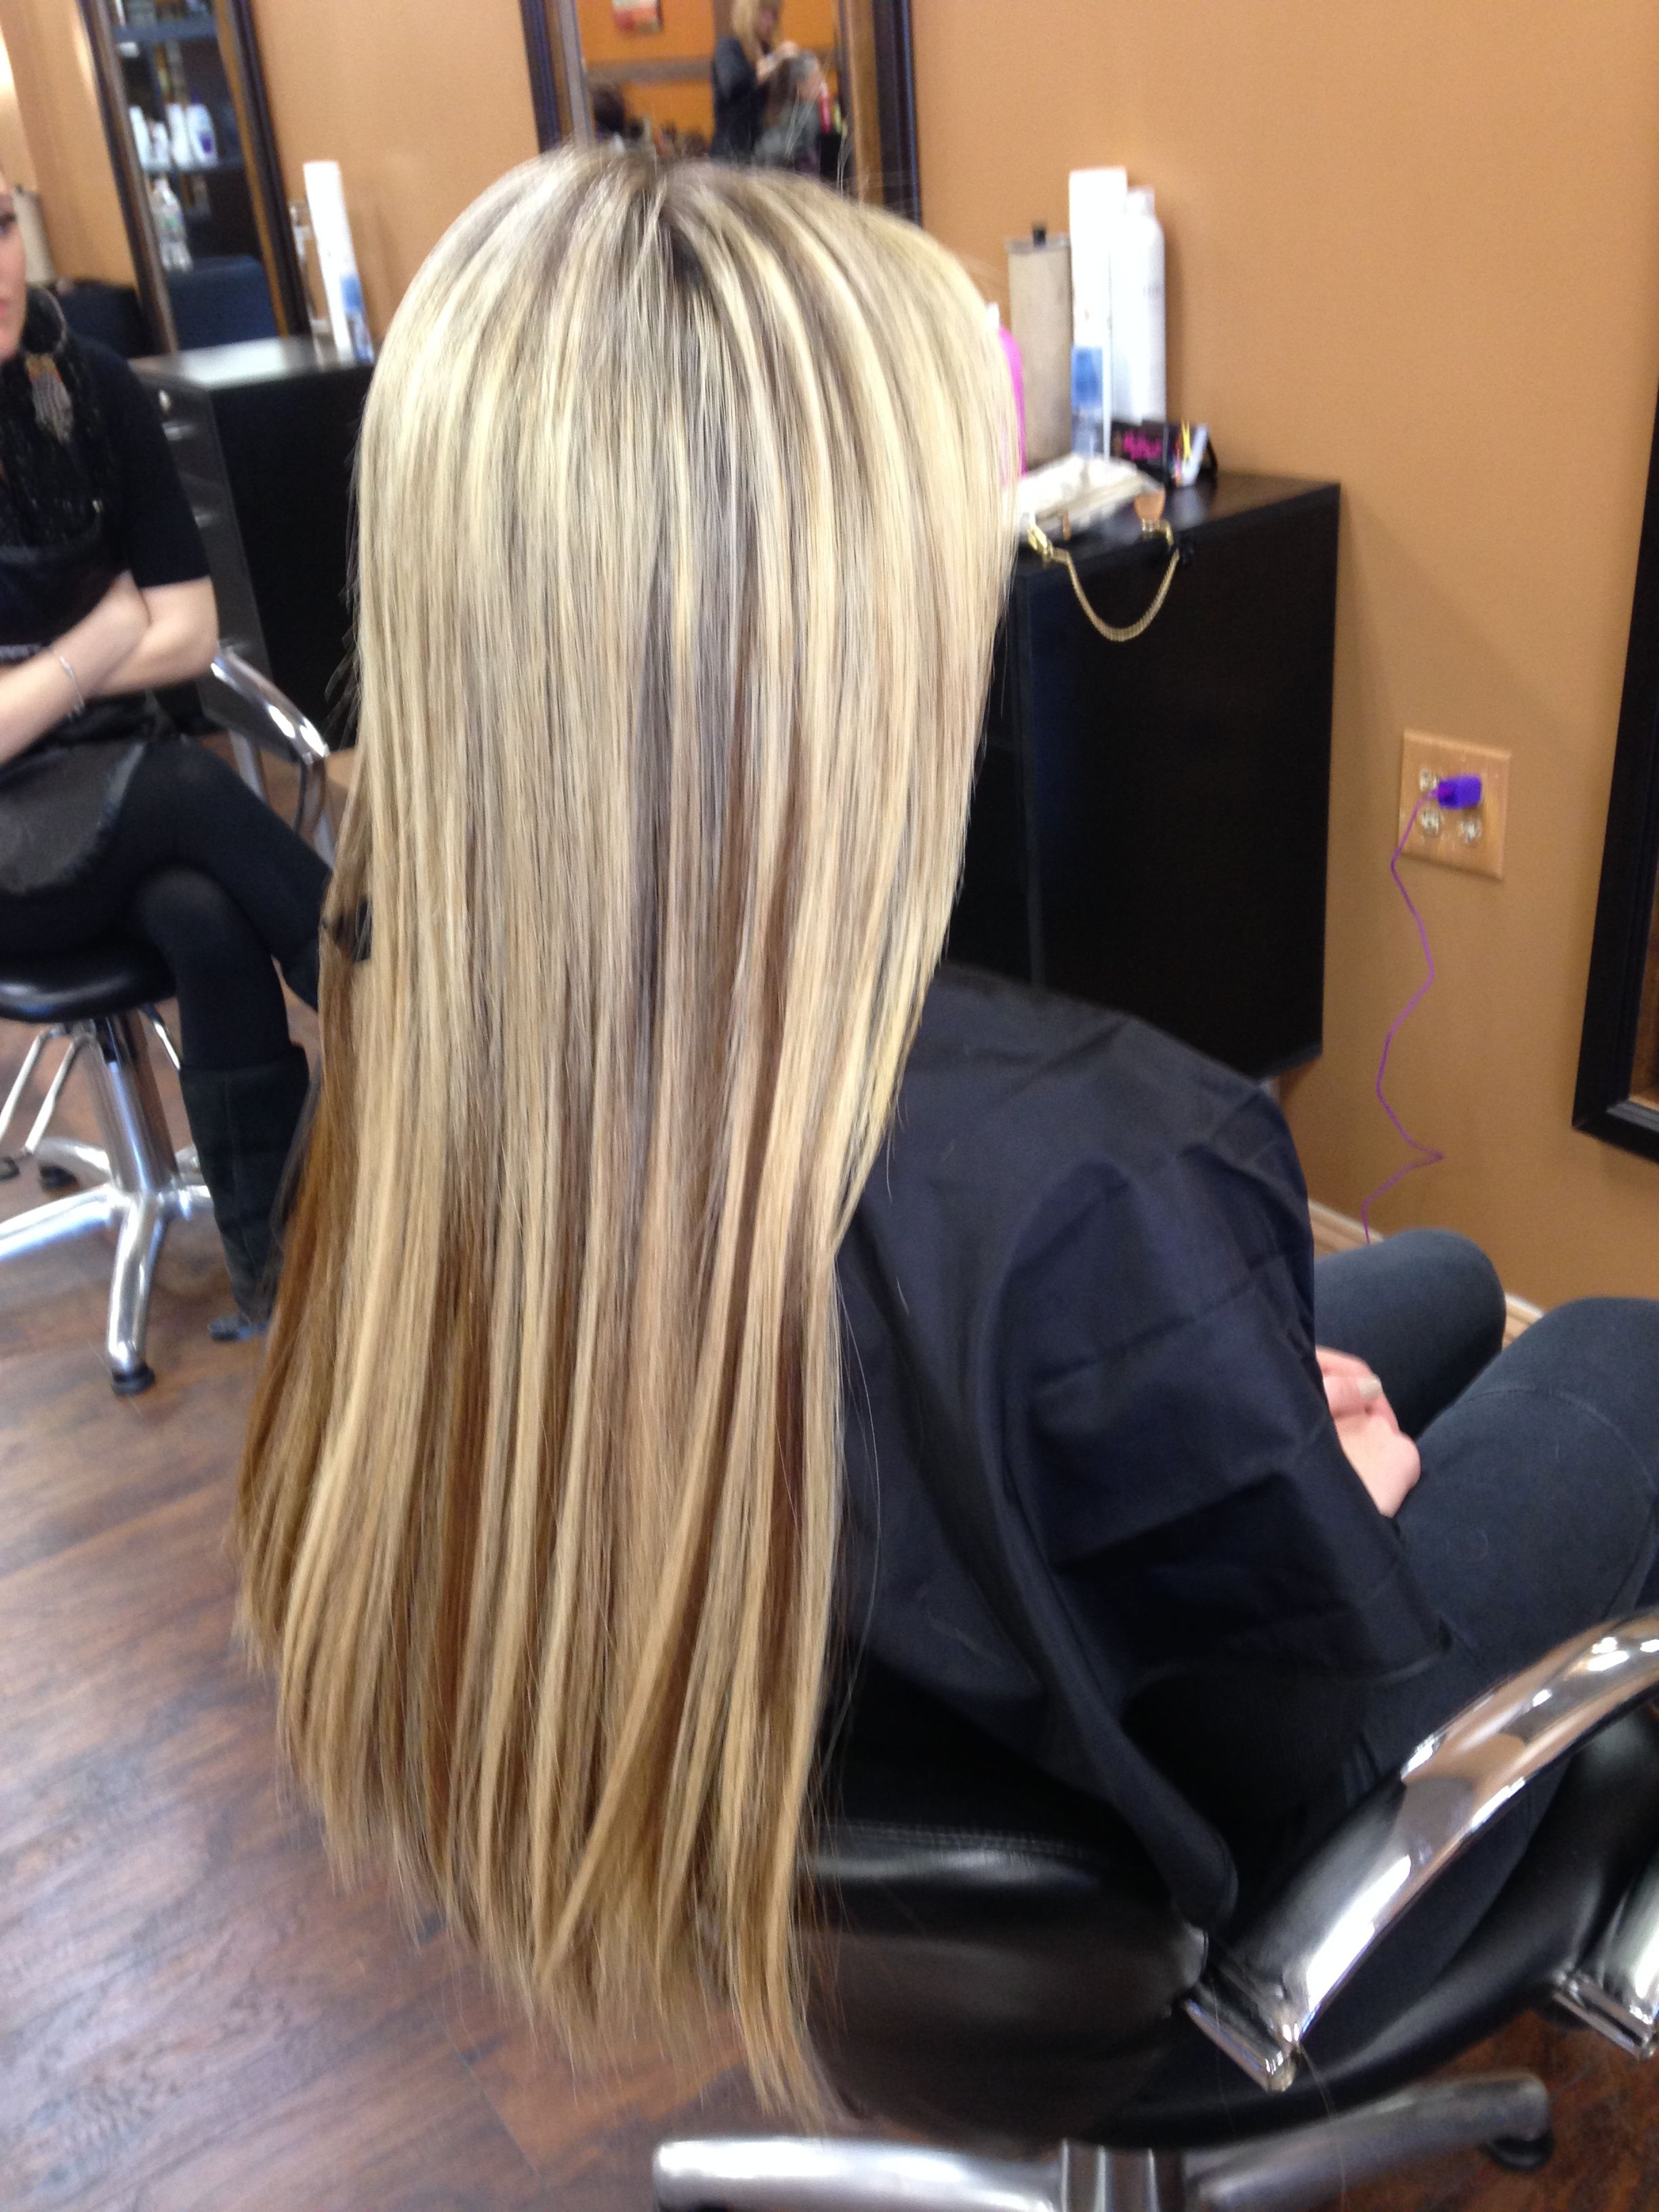 Great Lengths Bonded Hair Extensions Looking Amazing The Hair